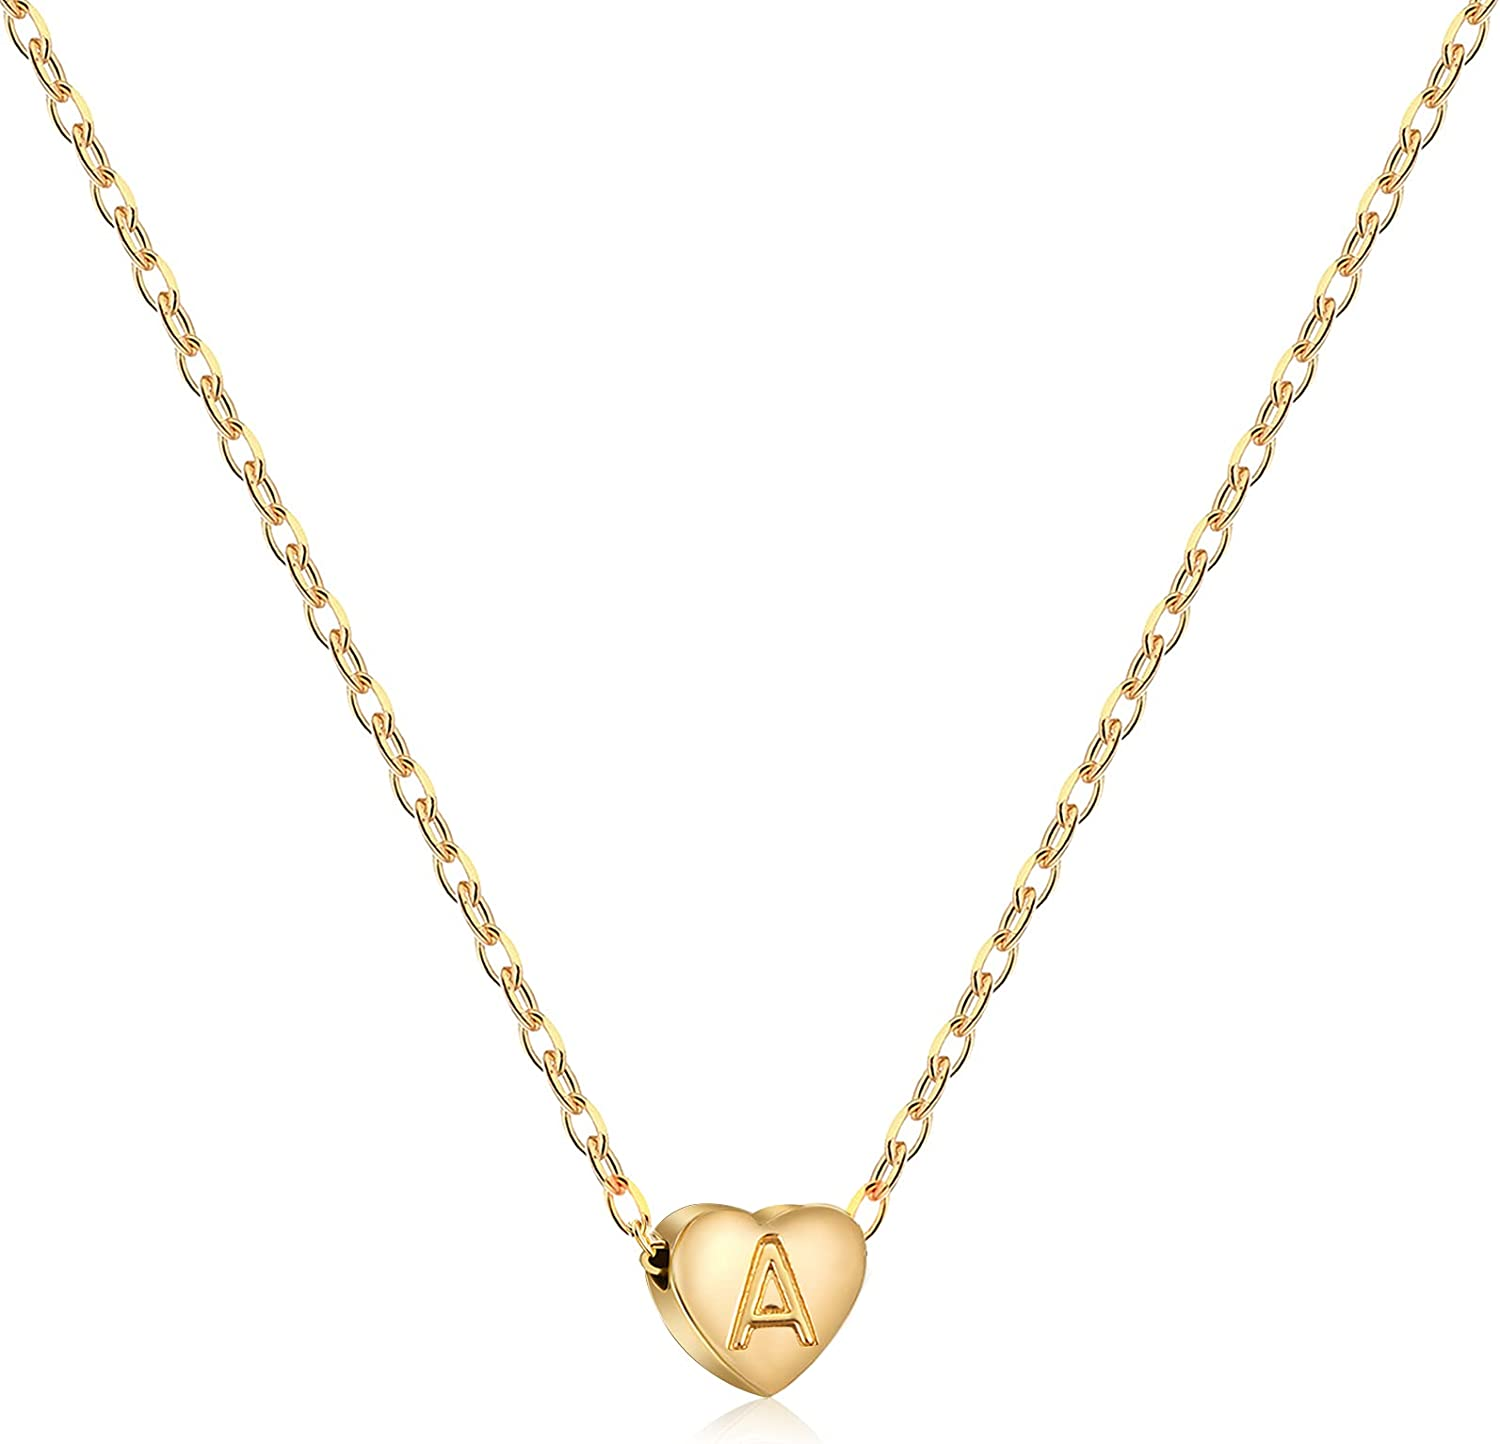 MJartoria Gold Initial Heart Choker Necklace for Women 24K Gold Plated Dainty Tiny Initial Heart Pendant Personalized Engraved A-Z Letter Heart Necklaces Jewelry Birthday Gifts for Teen Girls